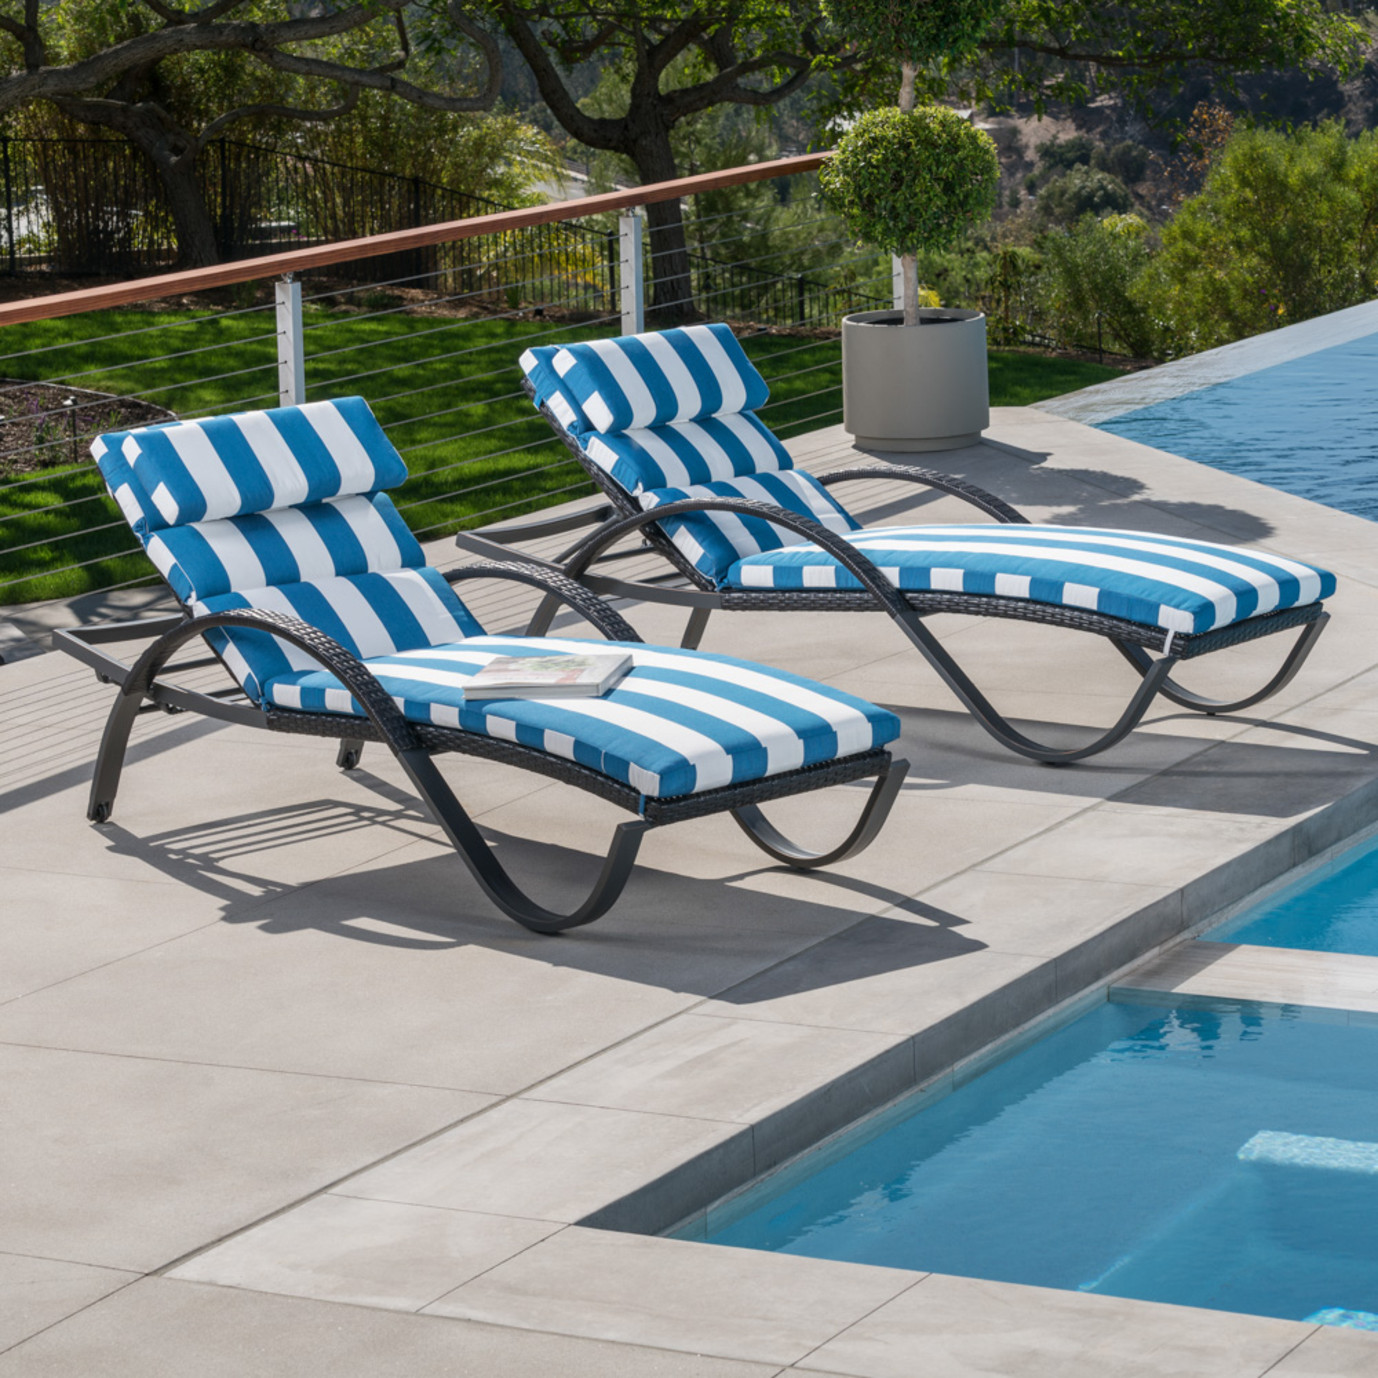 Deco™ Chaise Lounges with Cushions - Regatta Blue